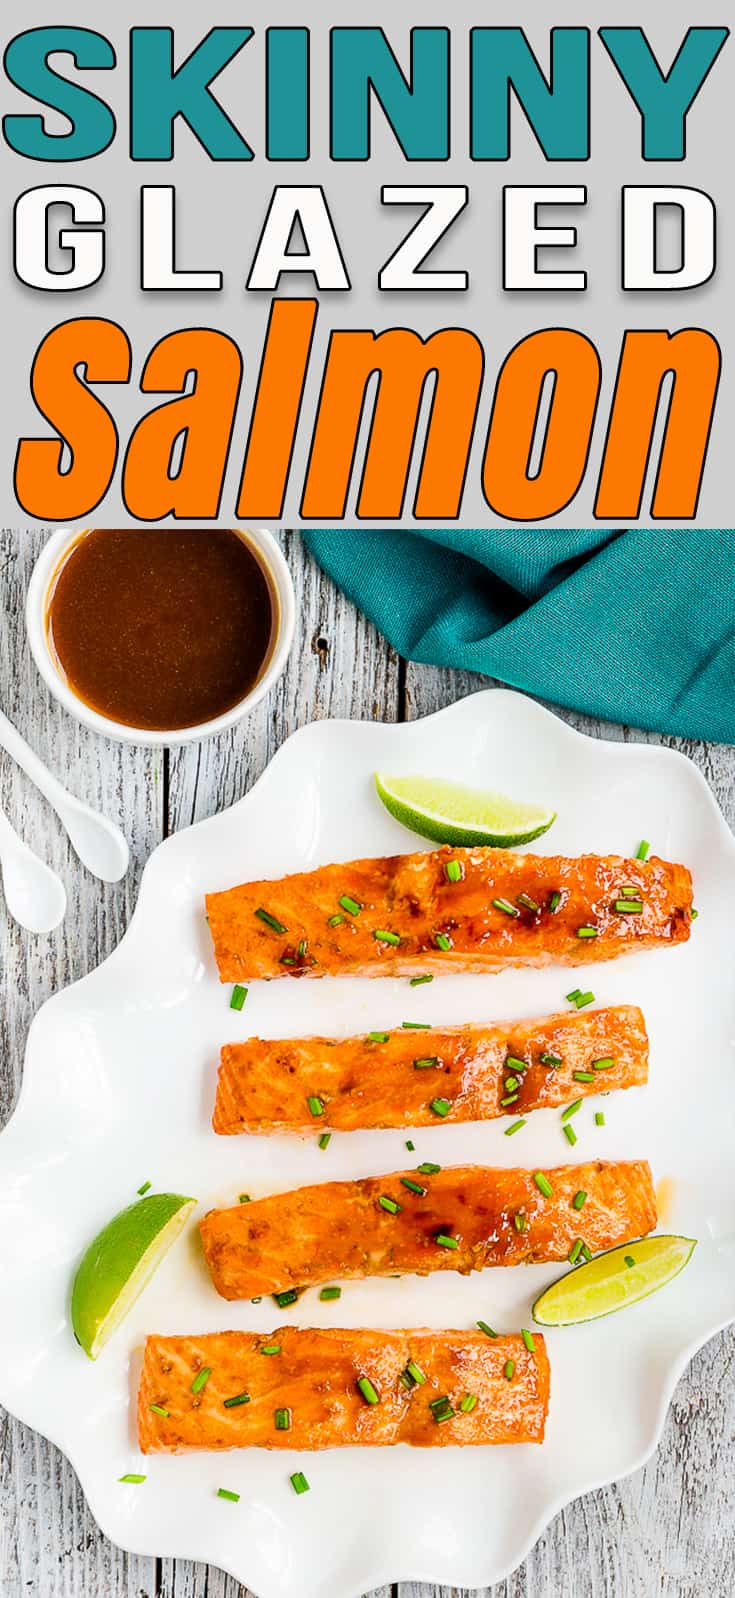 This easy 20-minute Skinny Glazed Salmon will soon be a favorite in your family table! It's easy to make with only 5 ingredients. #recipe #salmon #easy #healthy #lowcalorie #weightloss